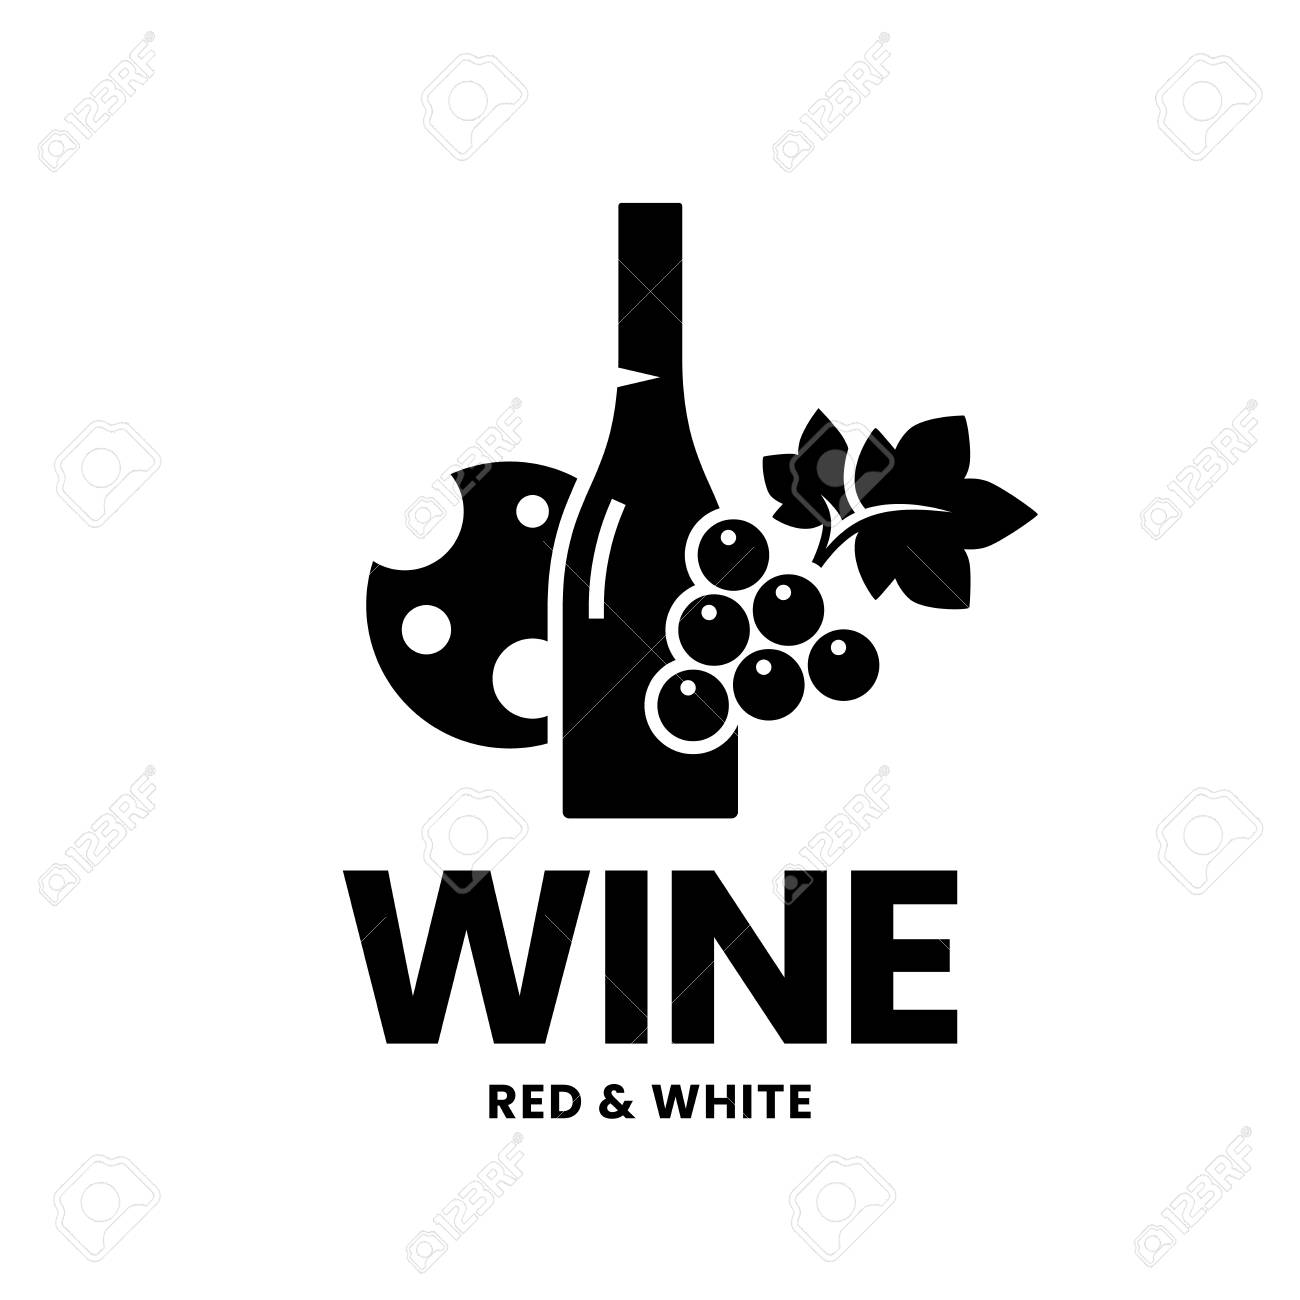 Modern wine vector logo sign for tavern, restaurant, house, shop, store, club and cellar isolated on white background. Premium quality vinery logotype illustration. Fashion brand badge design template. - 126498930